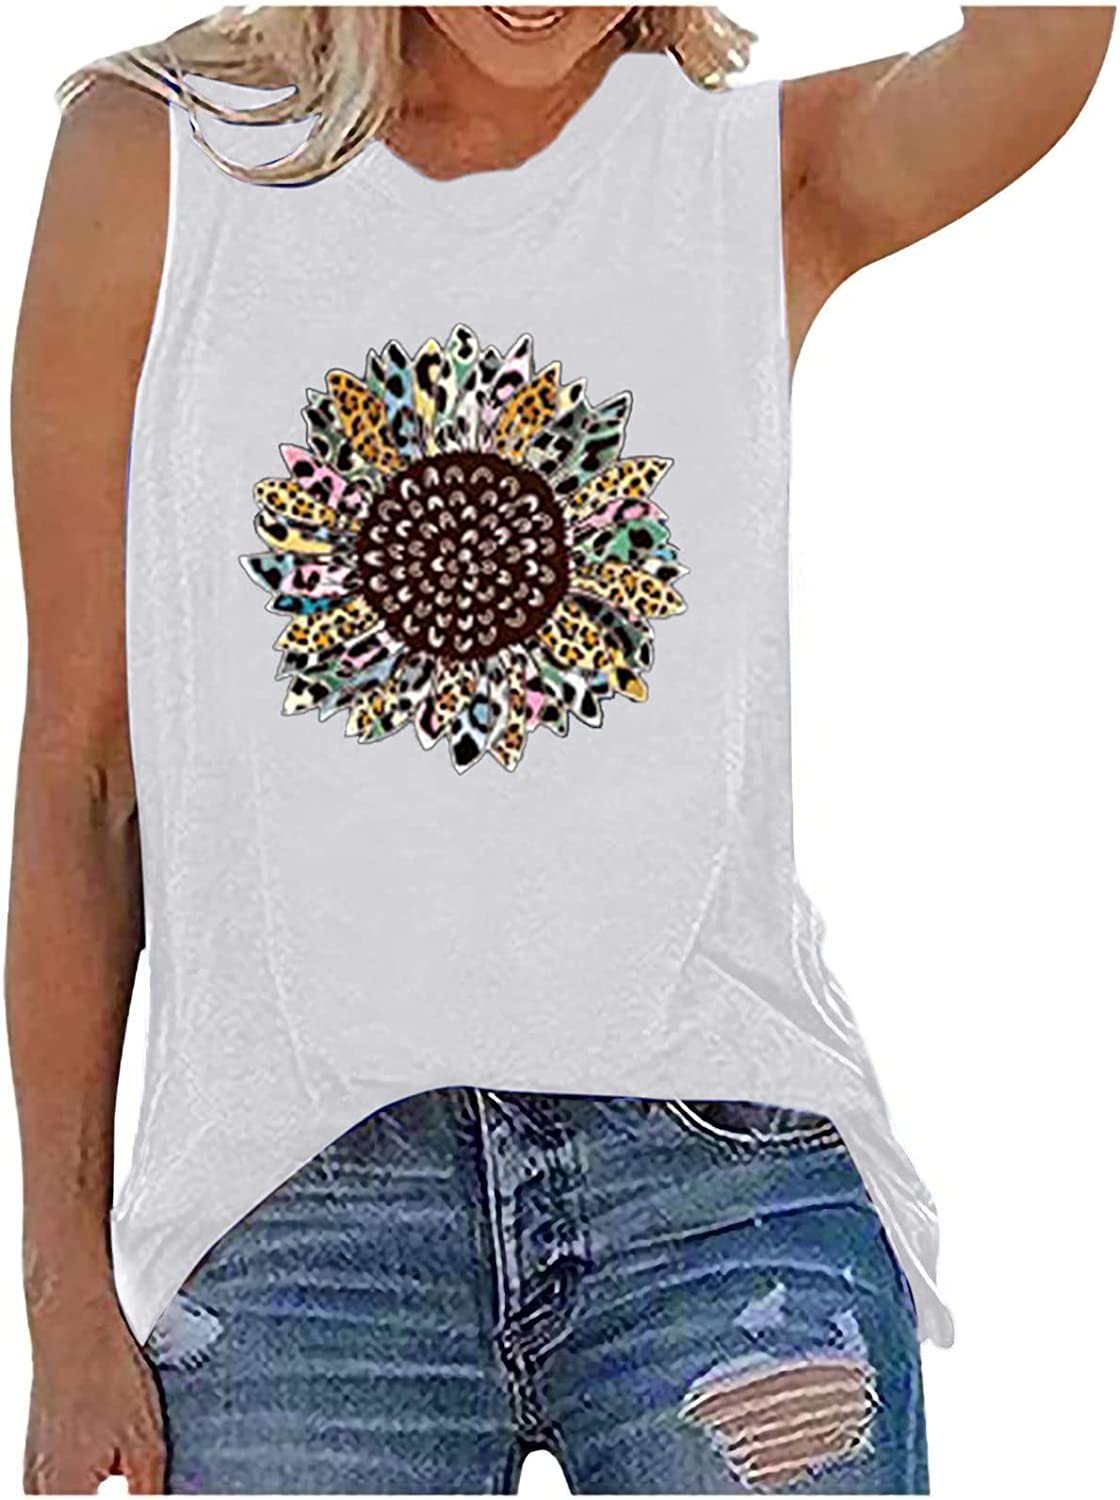 Recommendation Challenge the lowest price of Japan Womens Tank Tops Casual Sleeveless Loos Summer Graphic